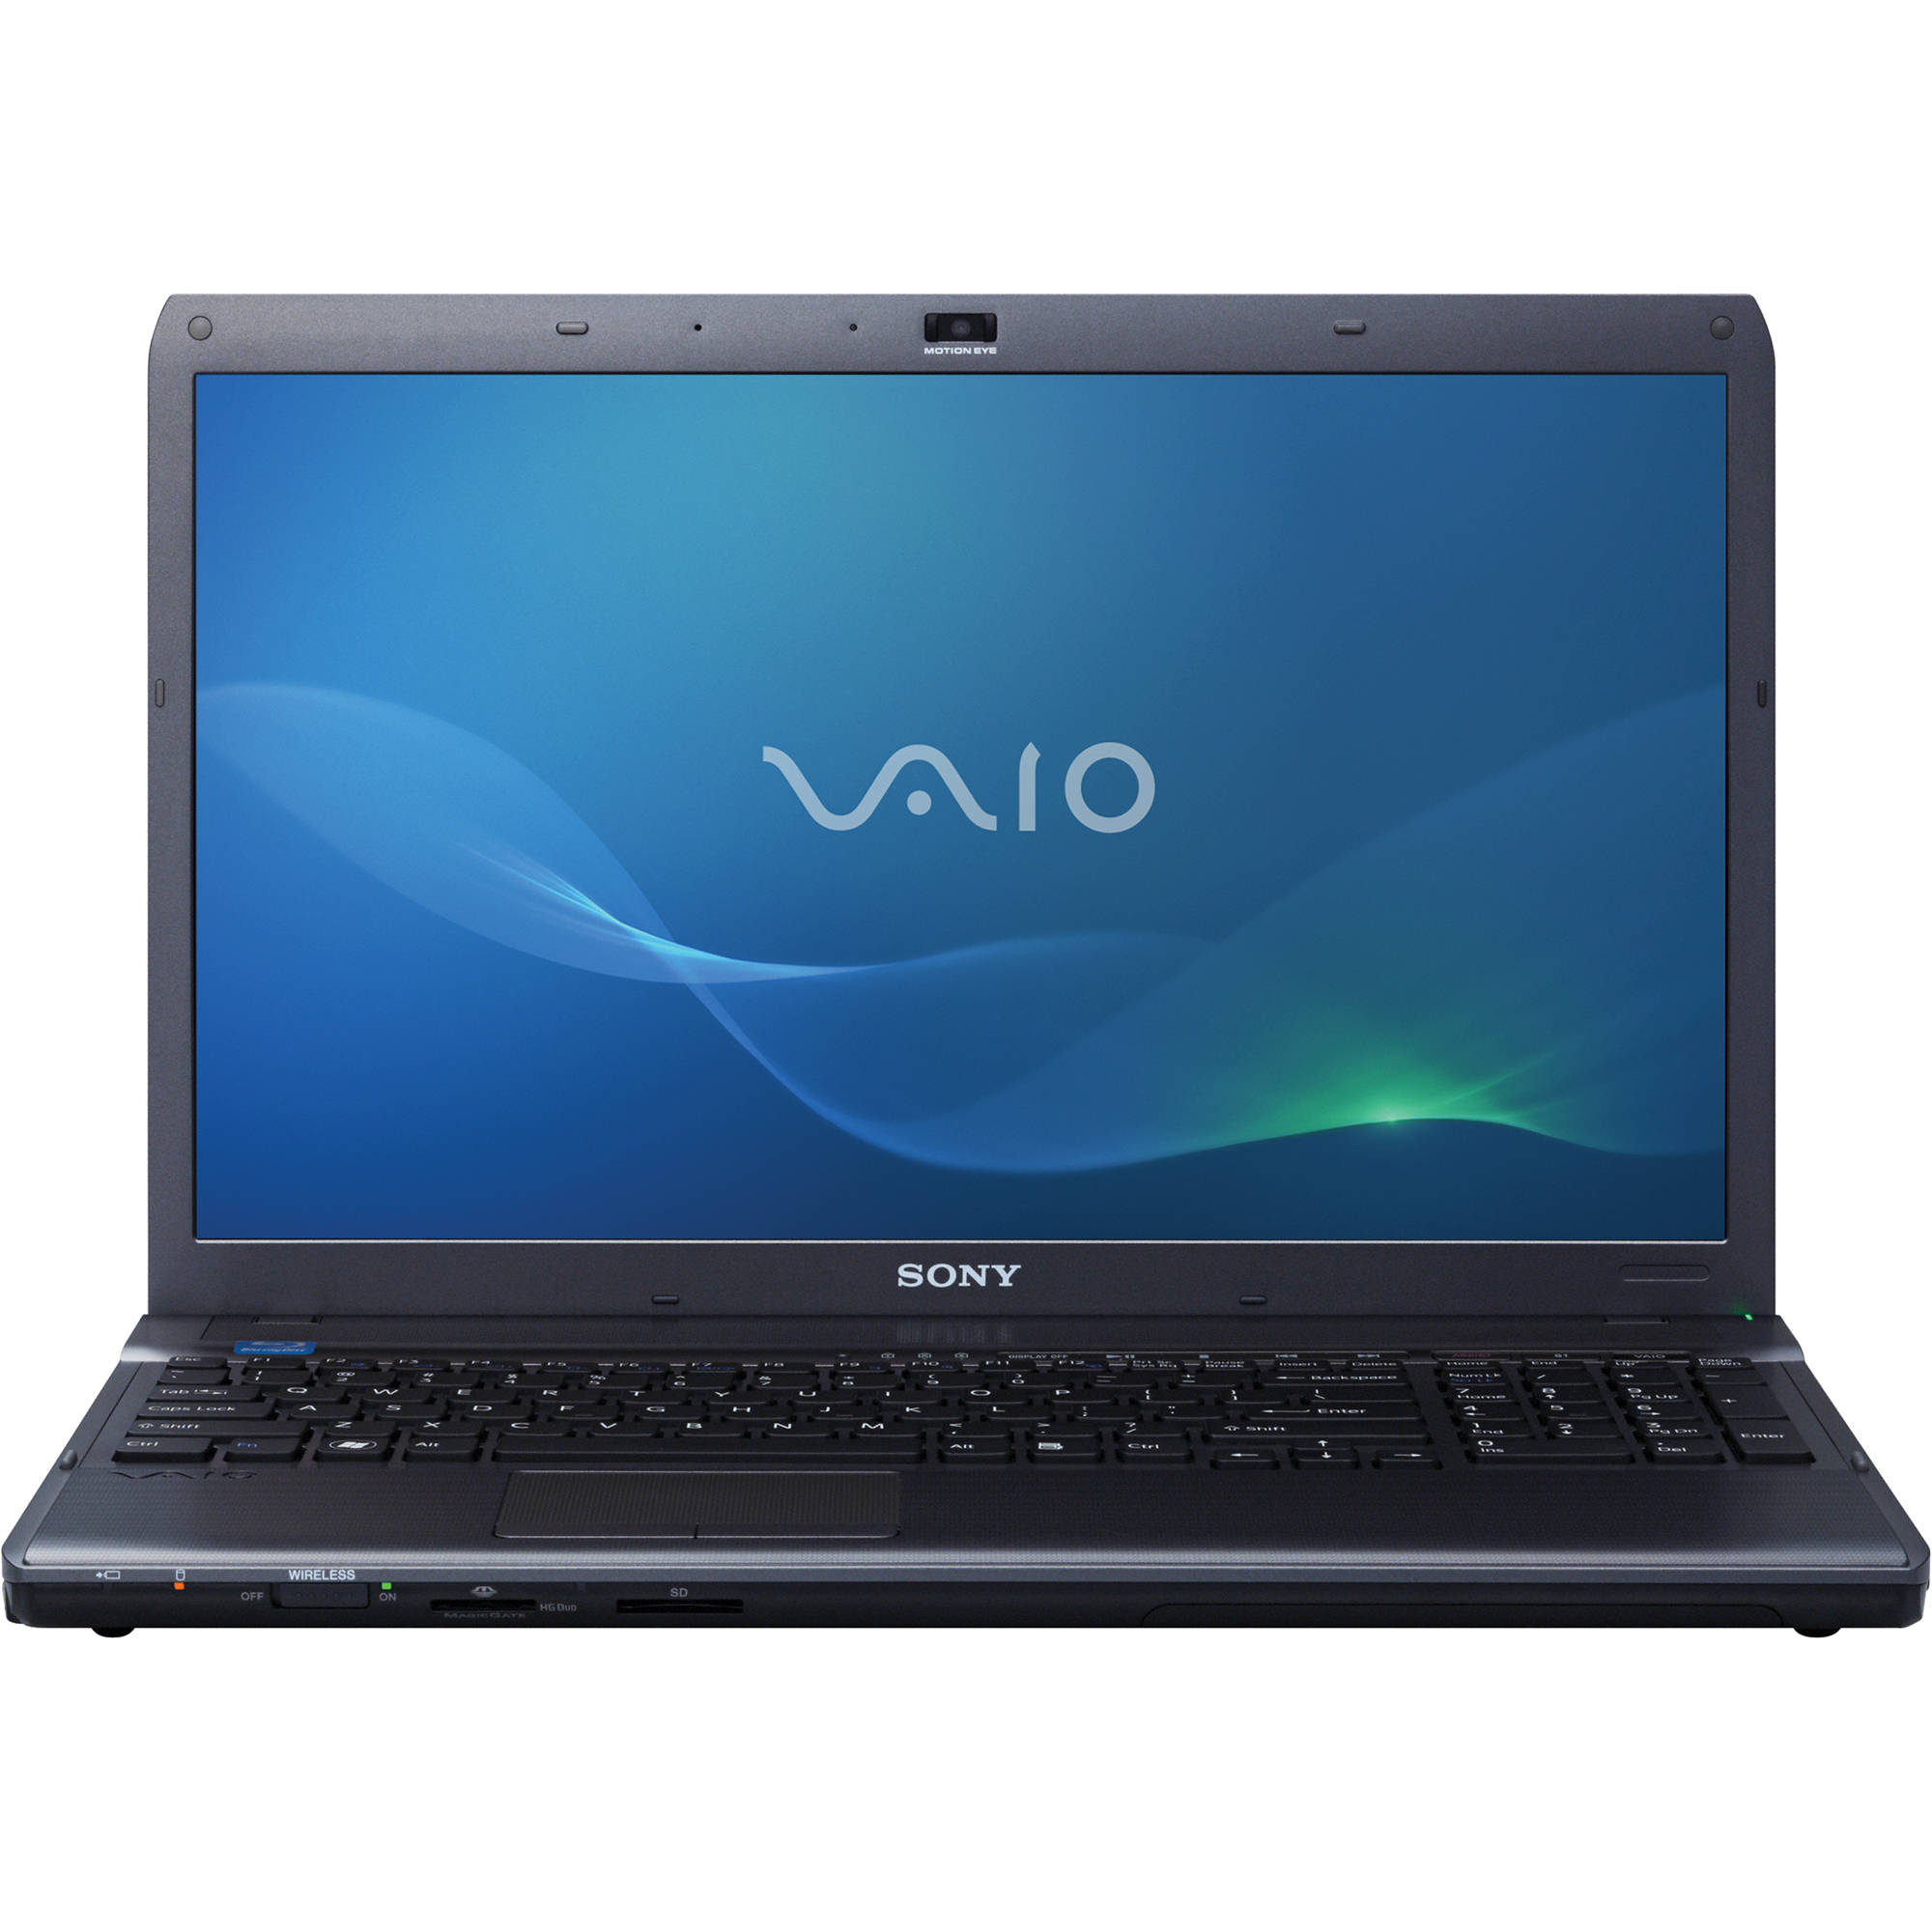 Sony Vaio VPCF137FX/B Notebook Drivers Update